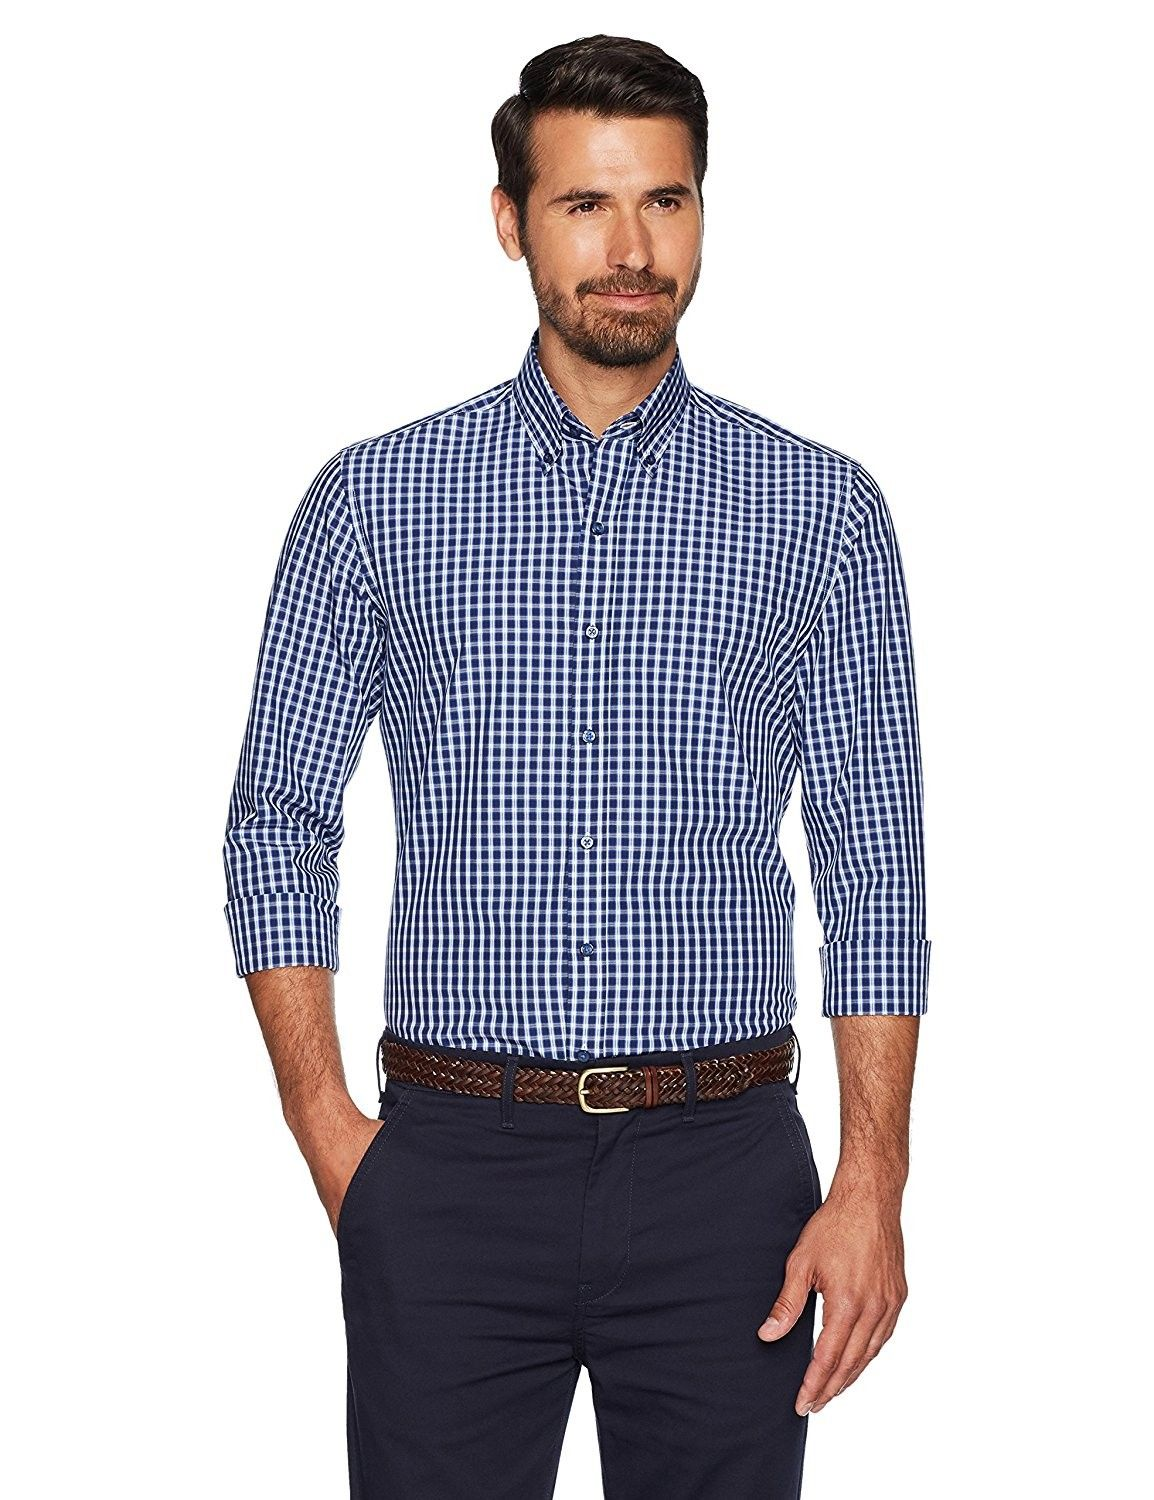 Mens Slim Fit Button Collar Sport Shirt Without Pocket Navy